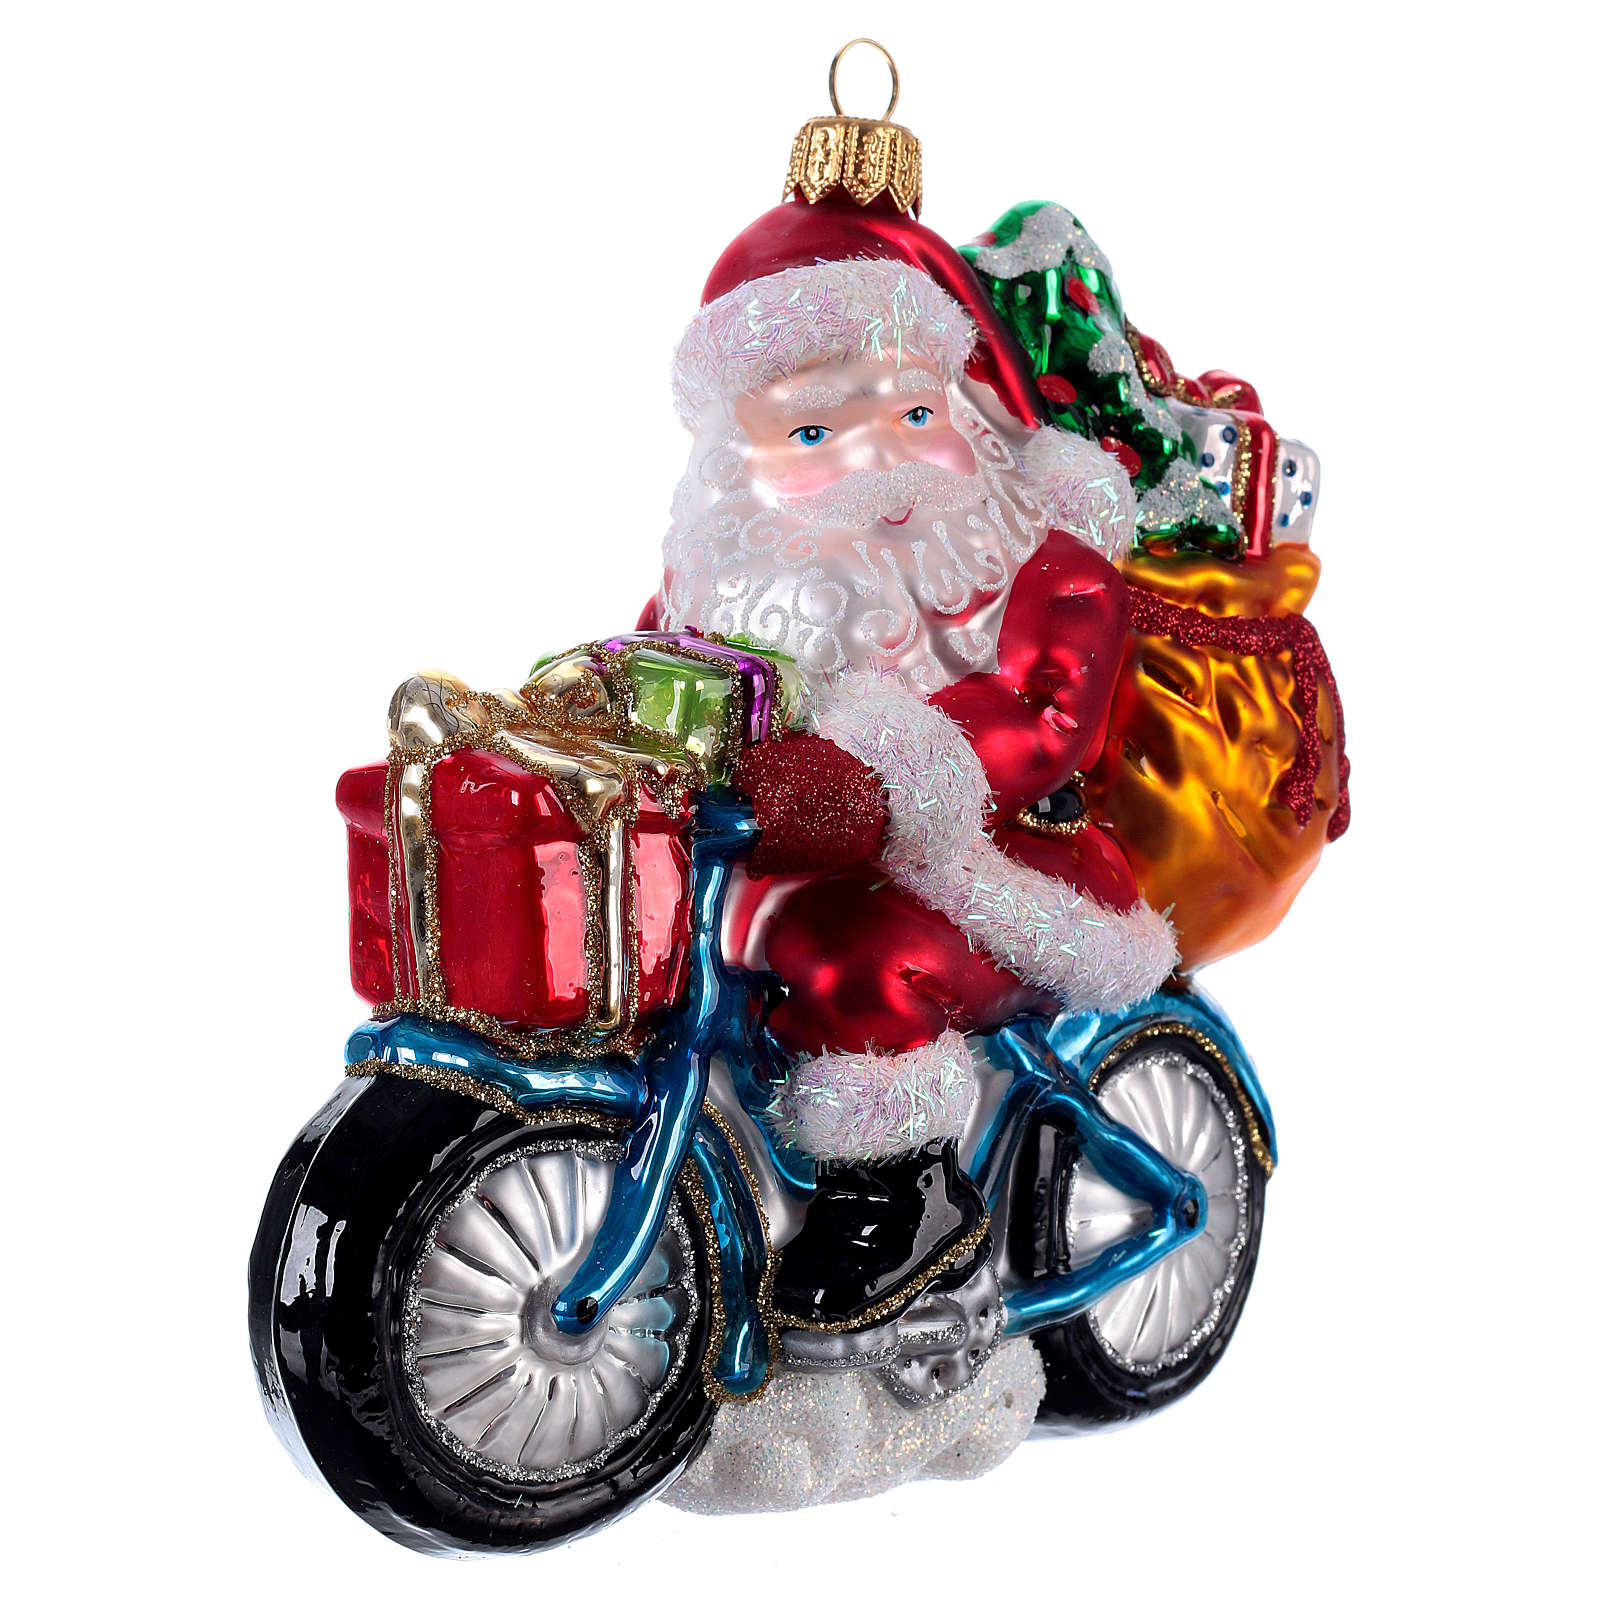 Santa Claus Riding a Bicycle Christmas ornament 4